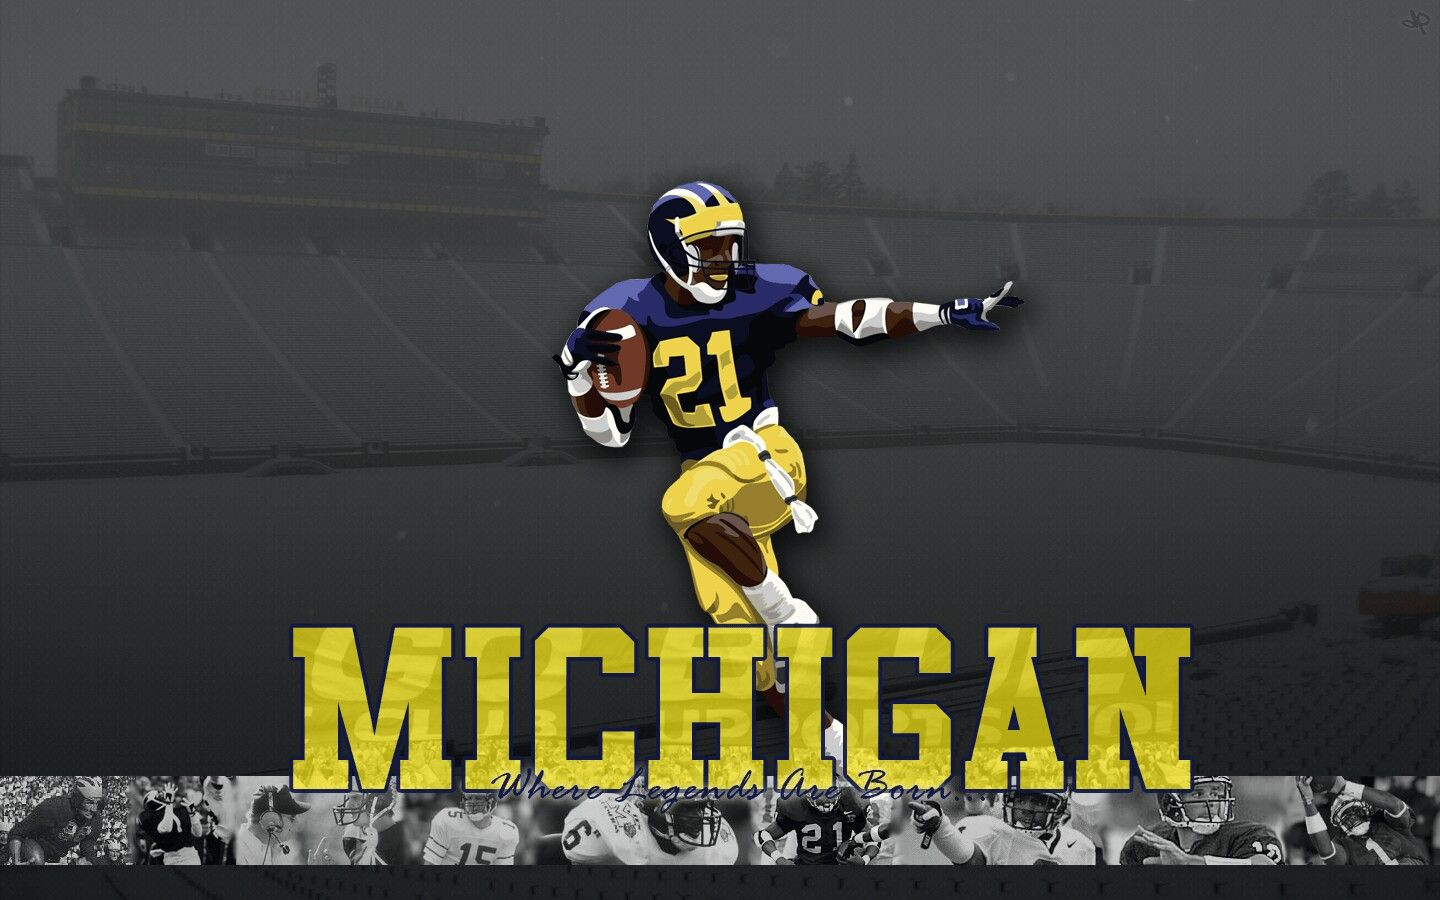 Pin By Andrew On Go Blue Michigan Wolverines Football Wolverines Football Michigan Wolverines